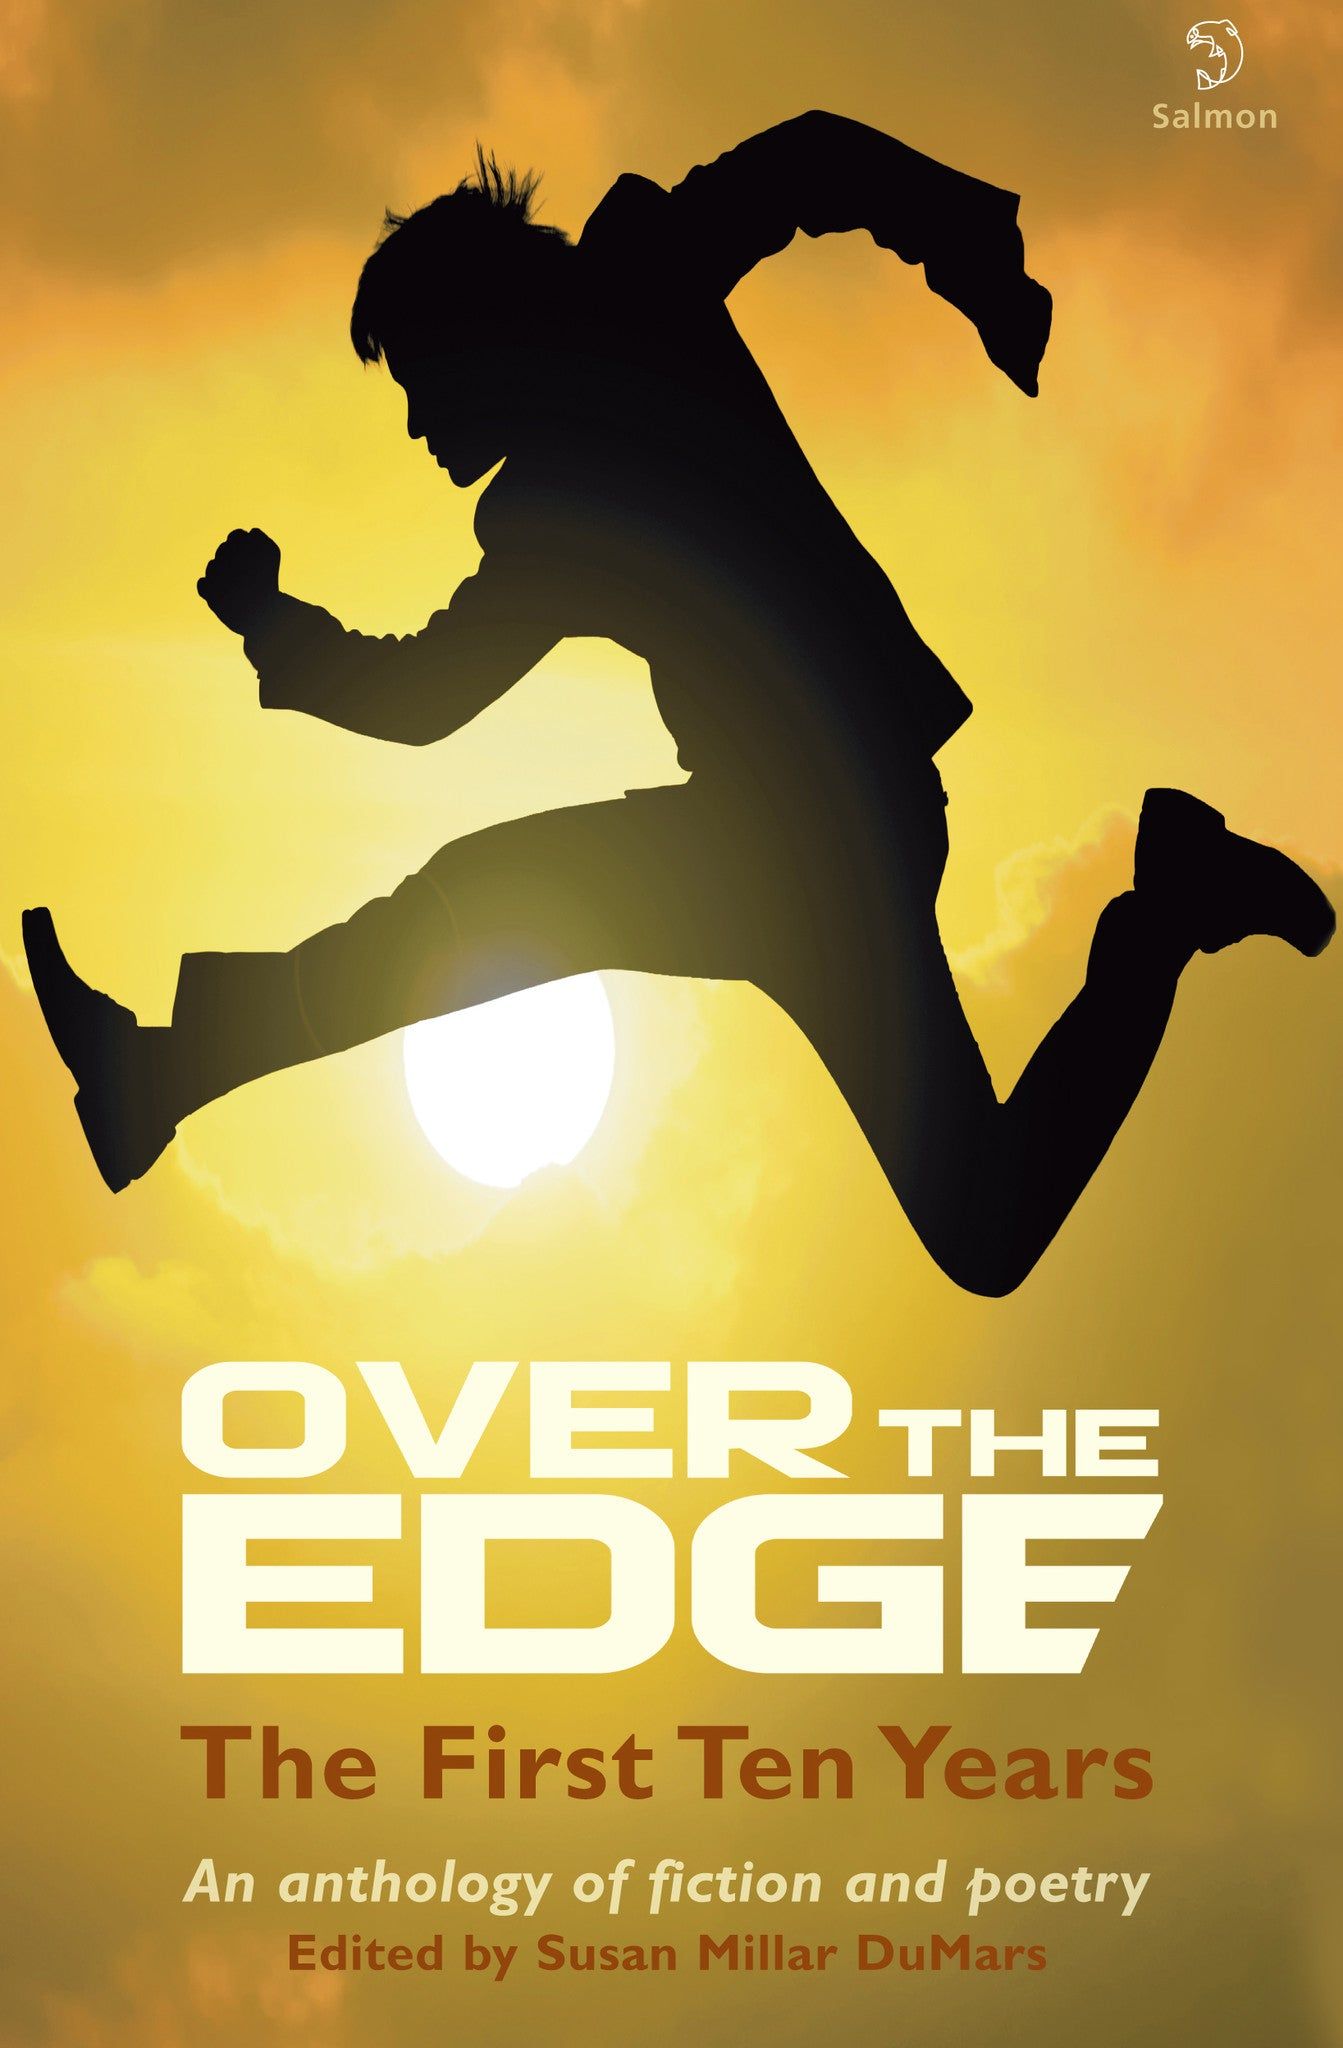 Over the Edge: The First Ten Years